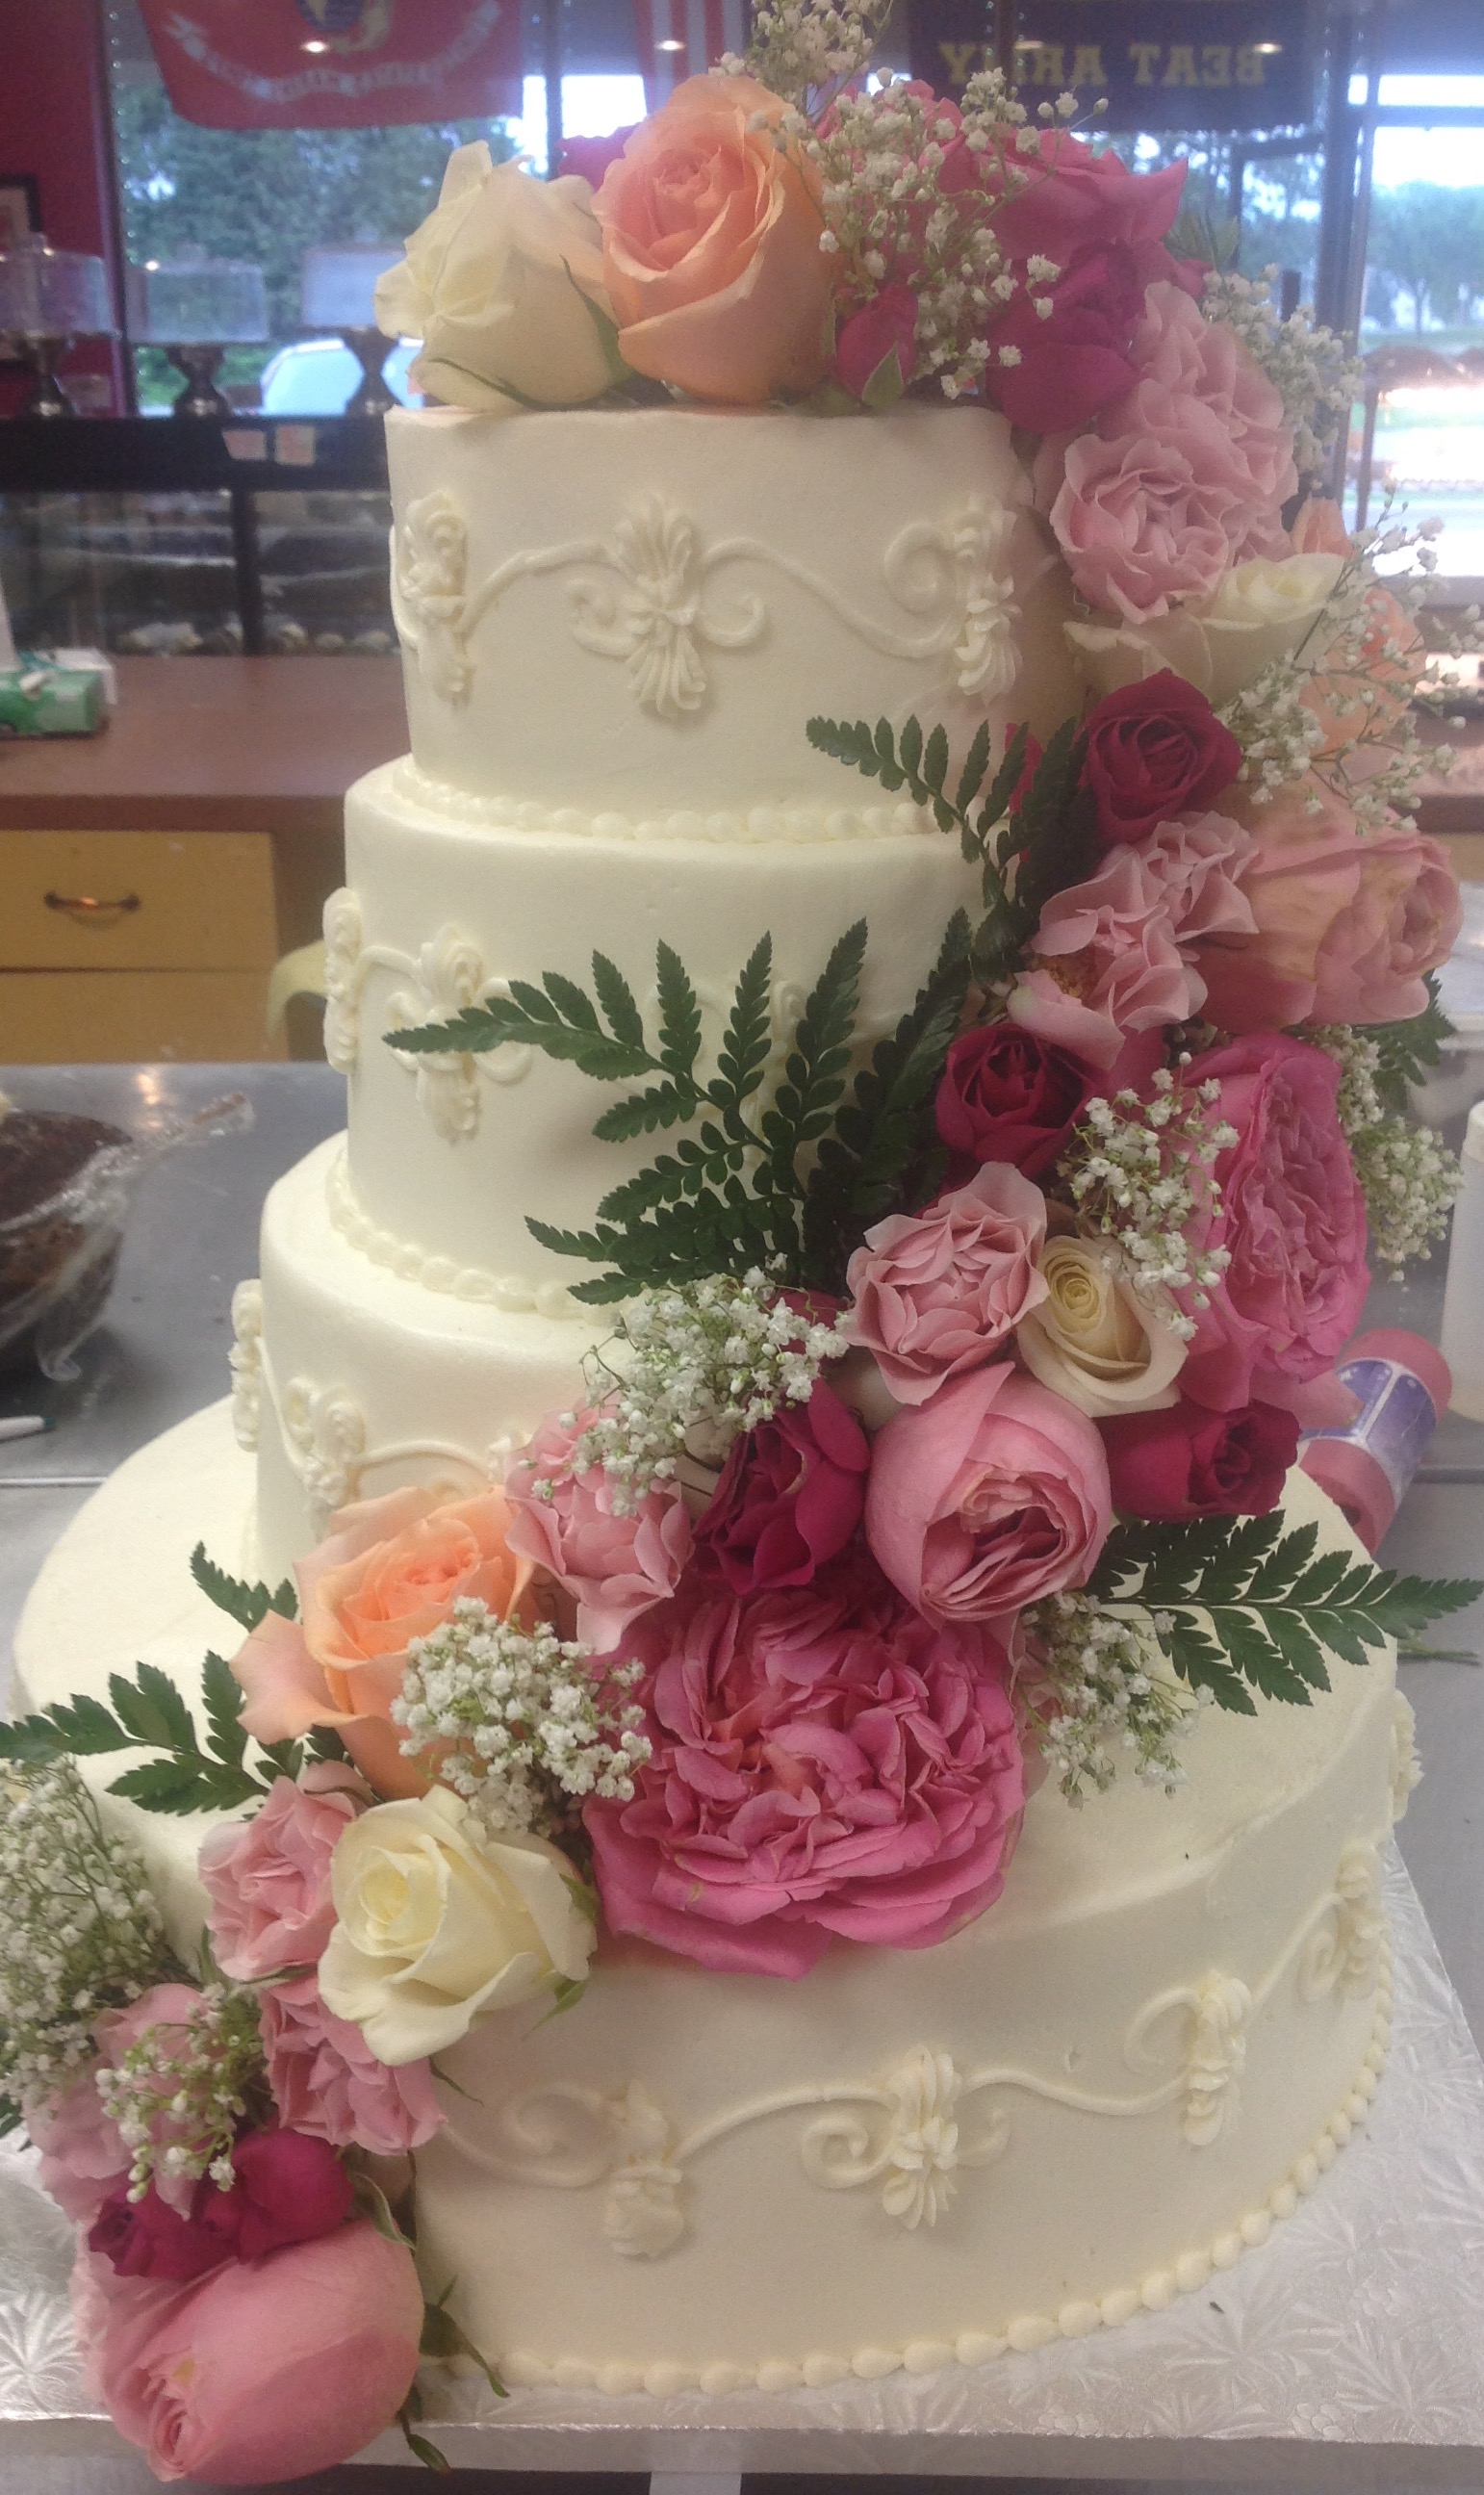 Fresh Flower Wedding Cake at Dolce and Biscotti Italian Bakery